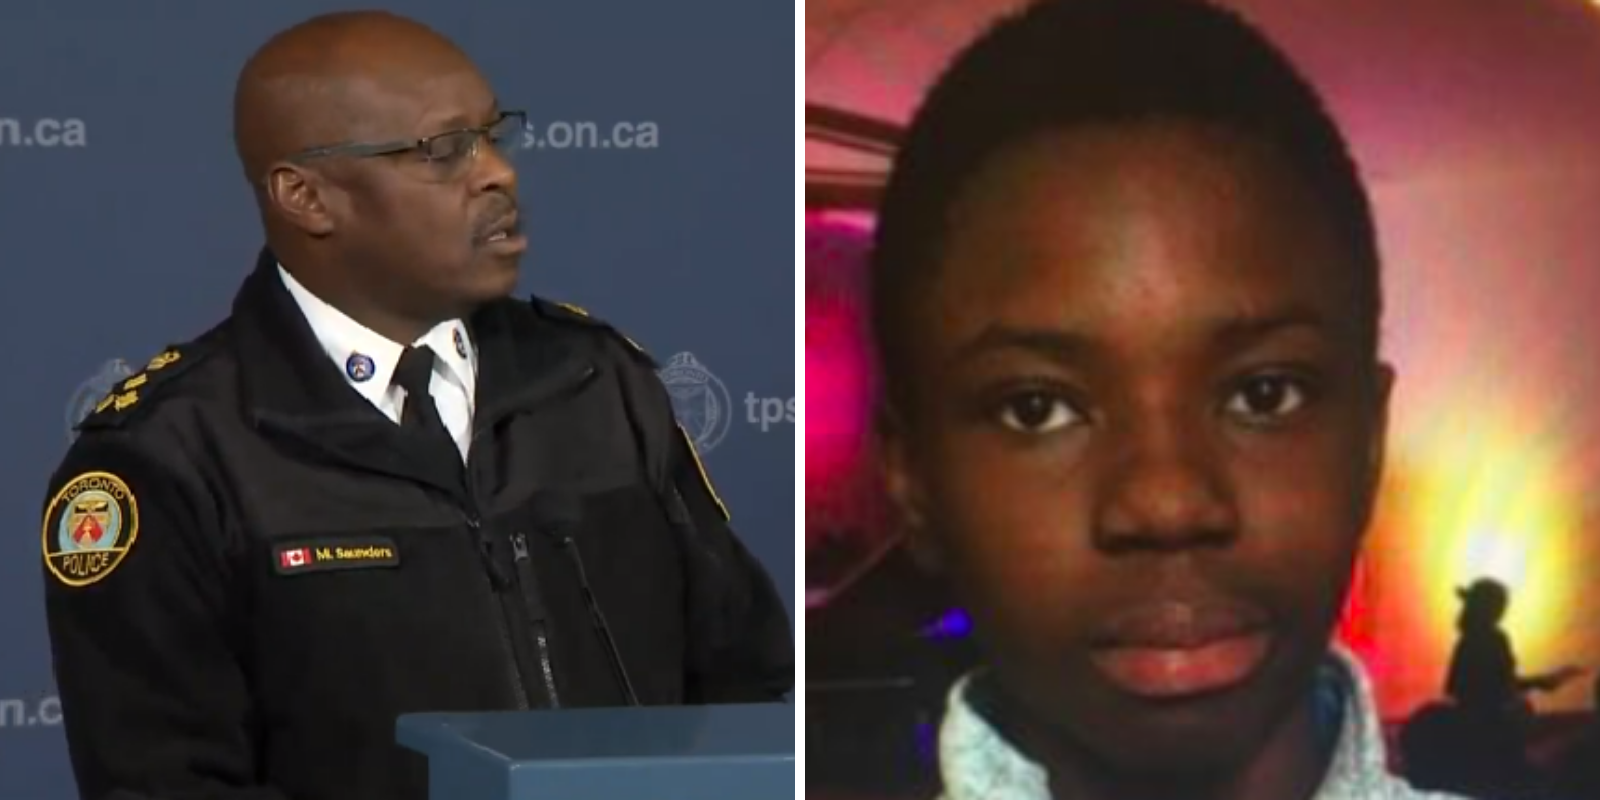 BREAKING: Abducted 14-year-old found in Brampton barn, kidnappers still at large